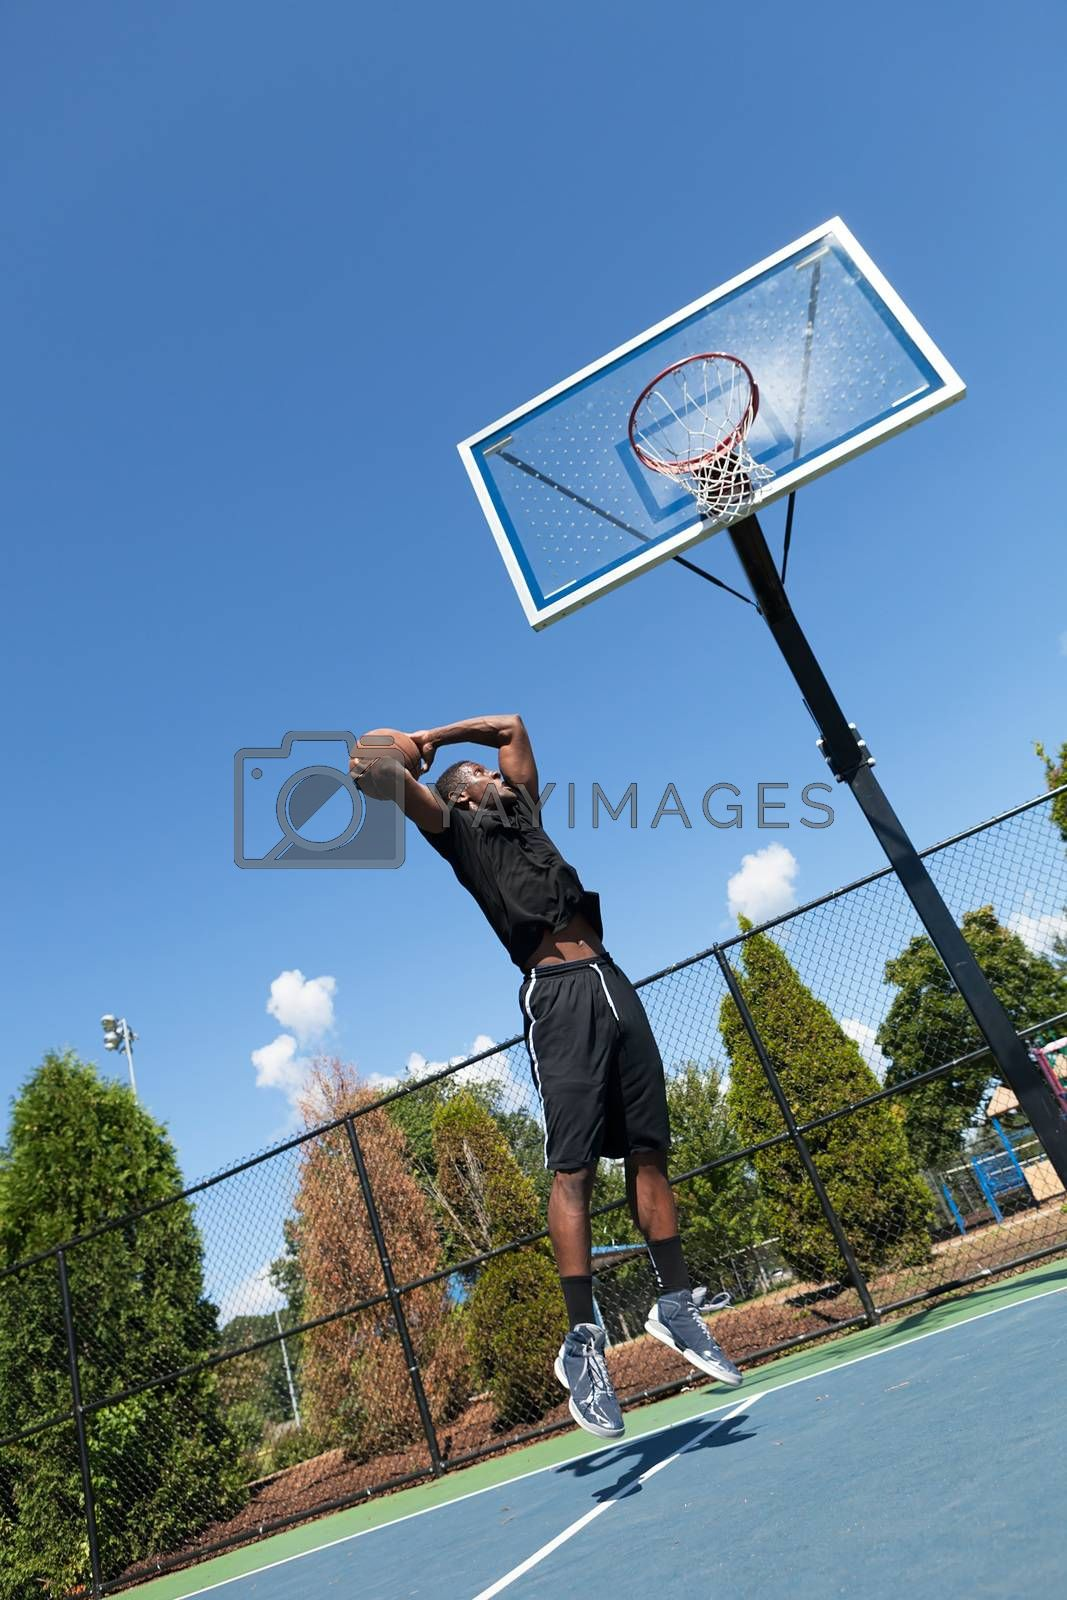 Young basketball player driving to the hoop for a high flying slam dunk. Shallow depth of field.